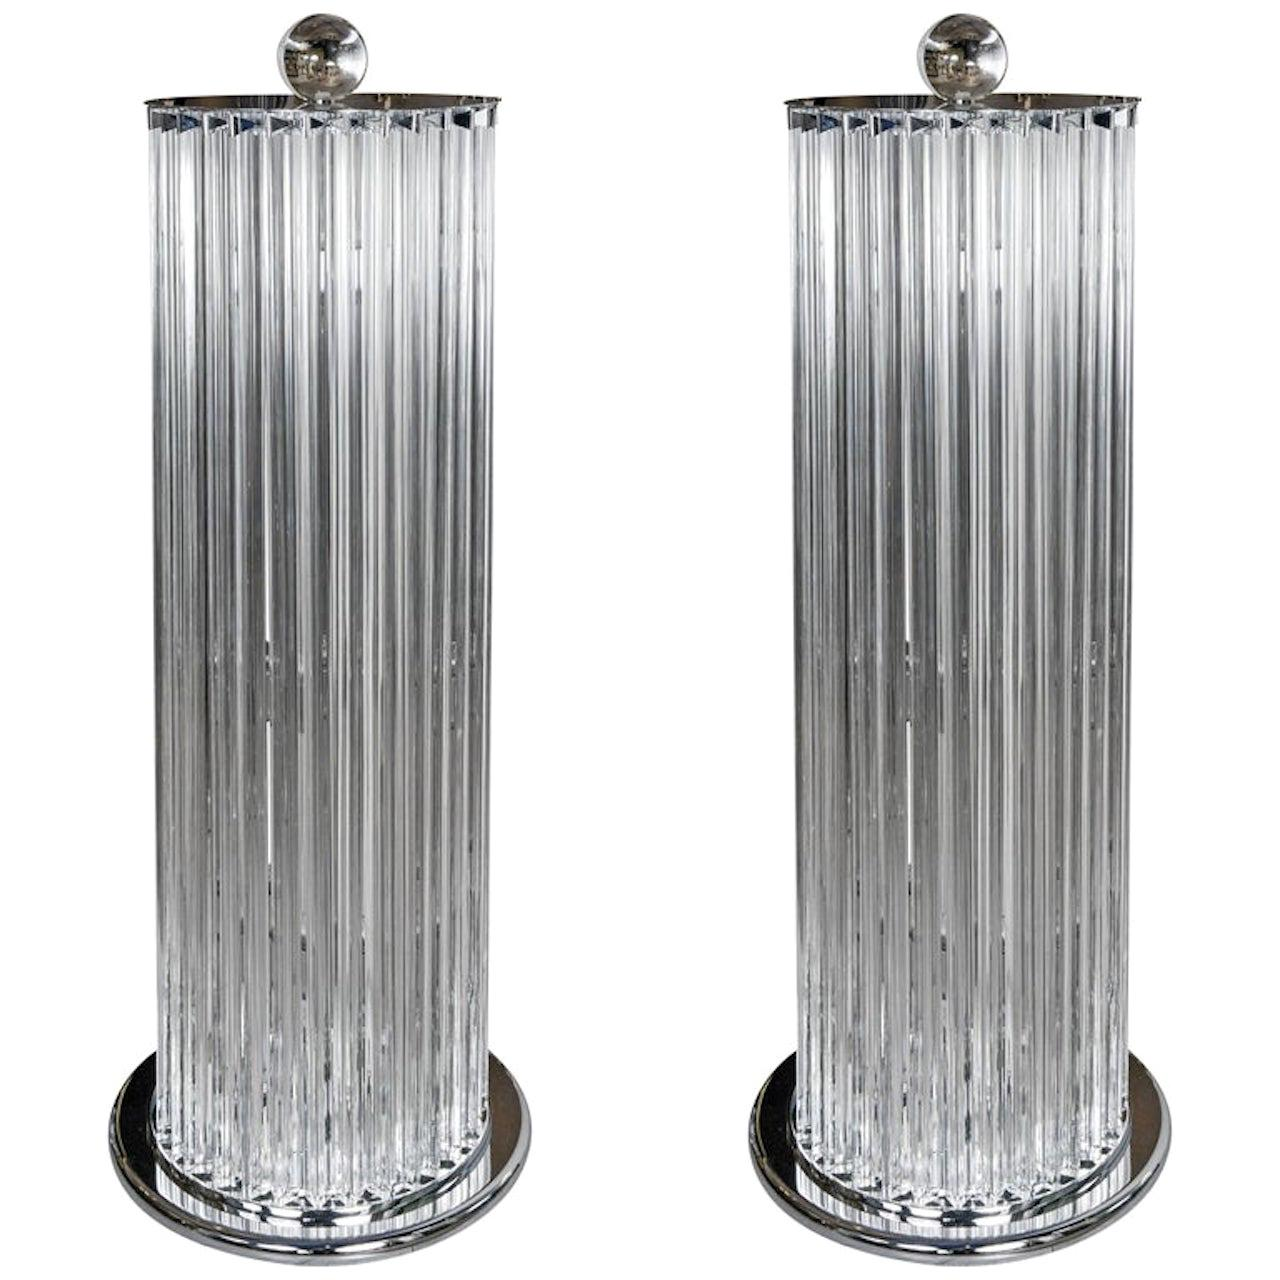 Pair of Floor Lamps in Murano Glass in the style of Venini, Circa 1990